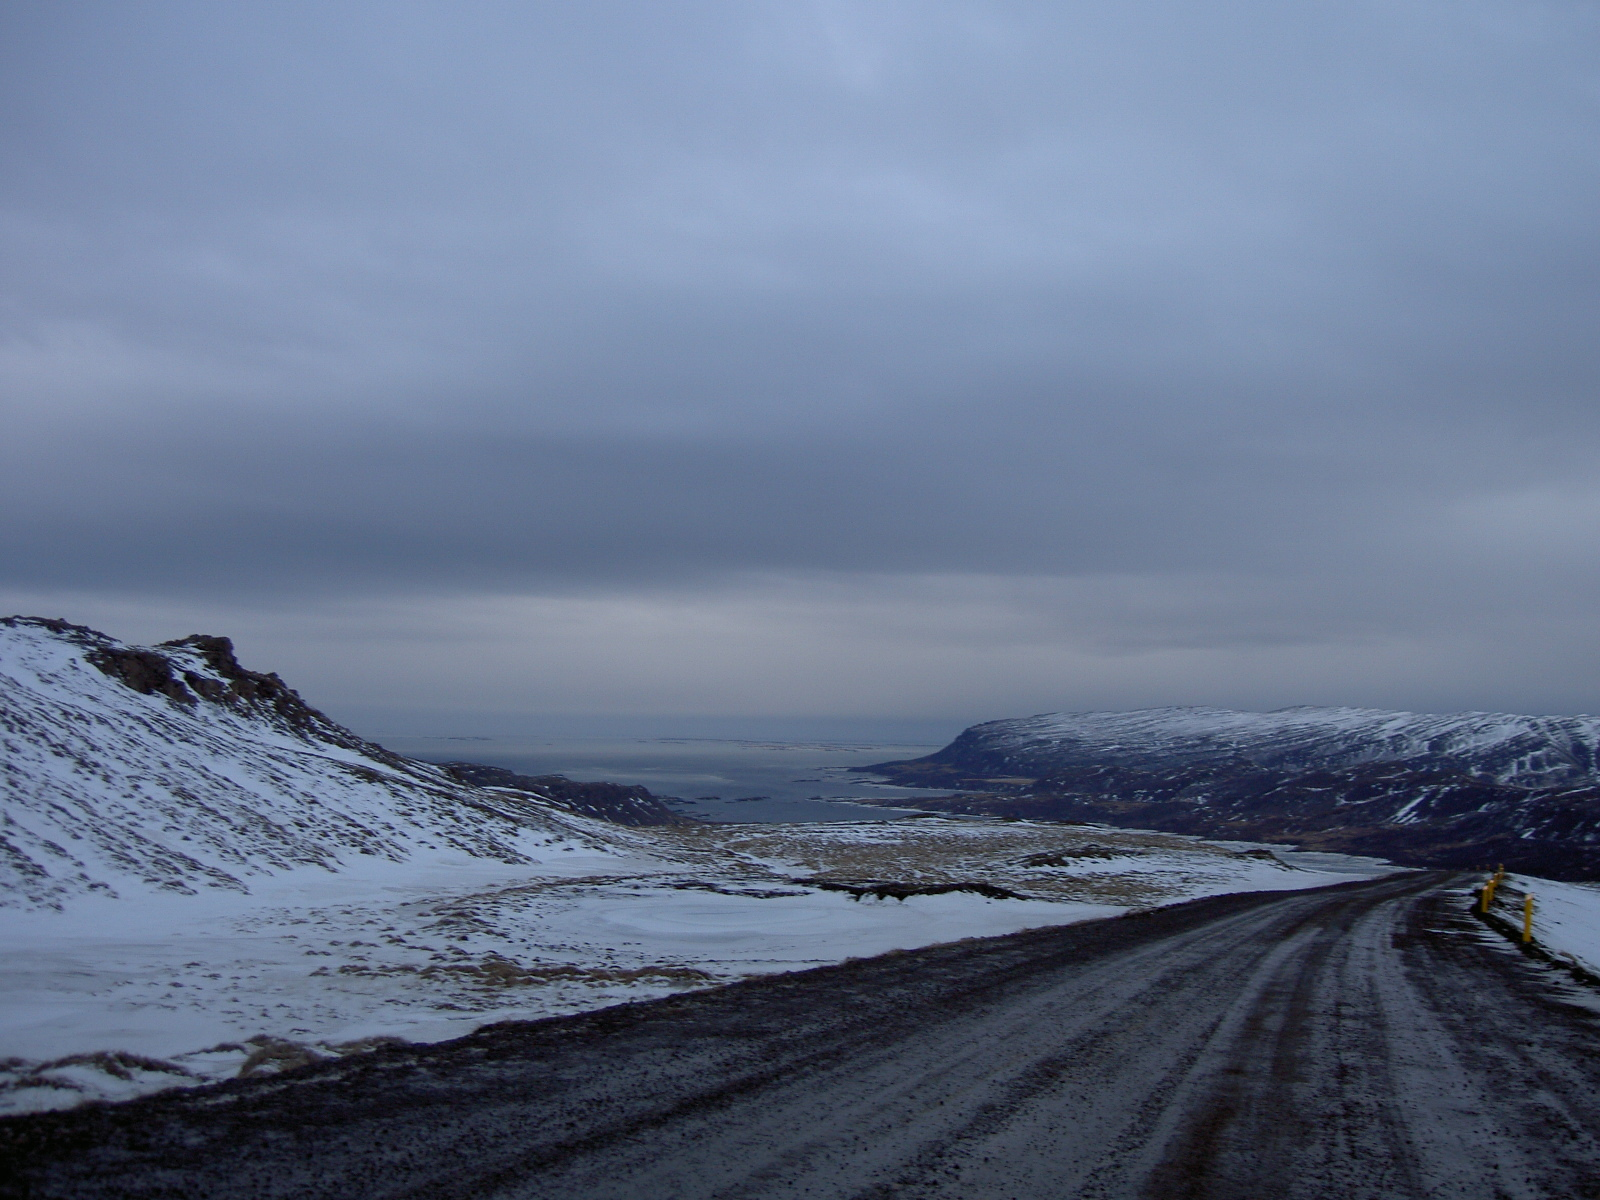 Westfjords (purpose of page is to display an image)